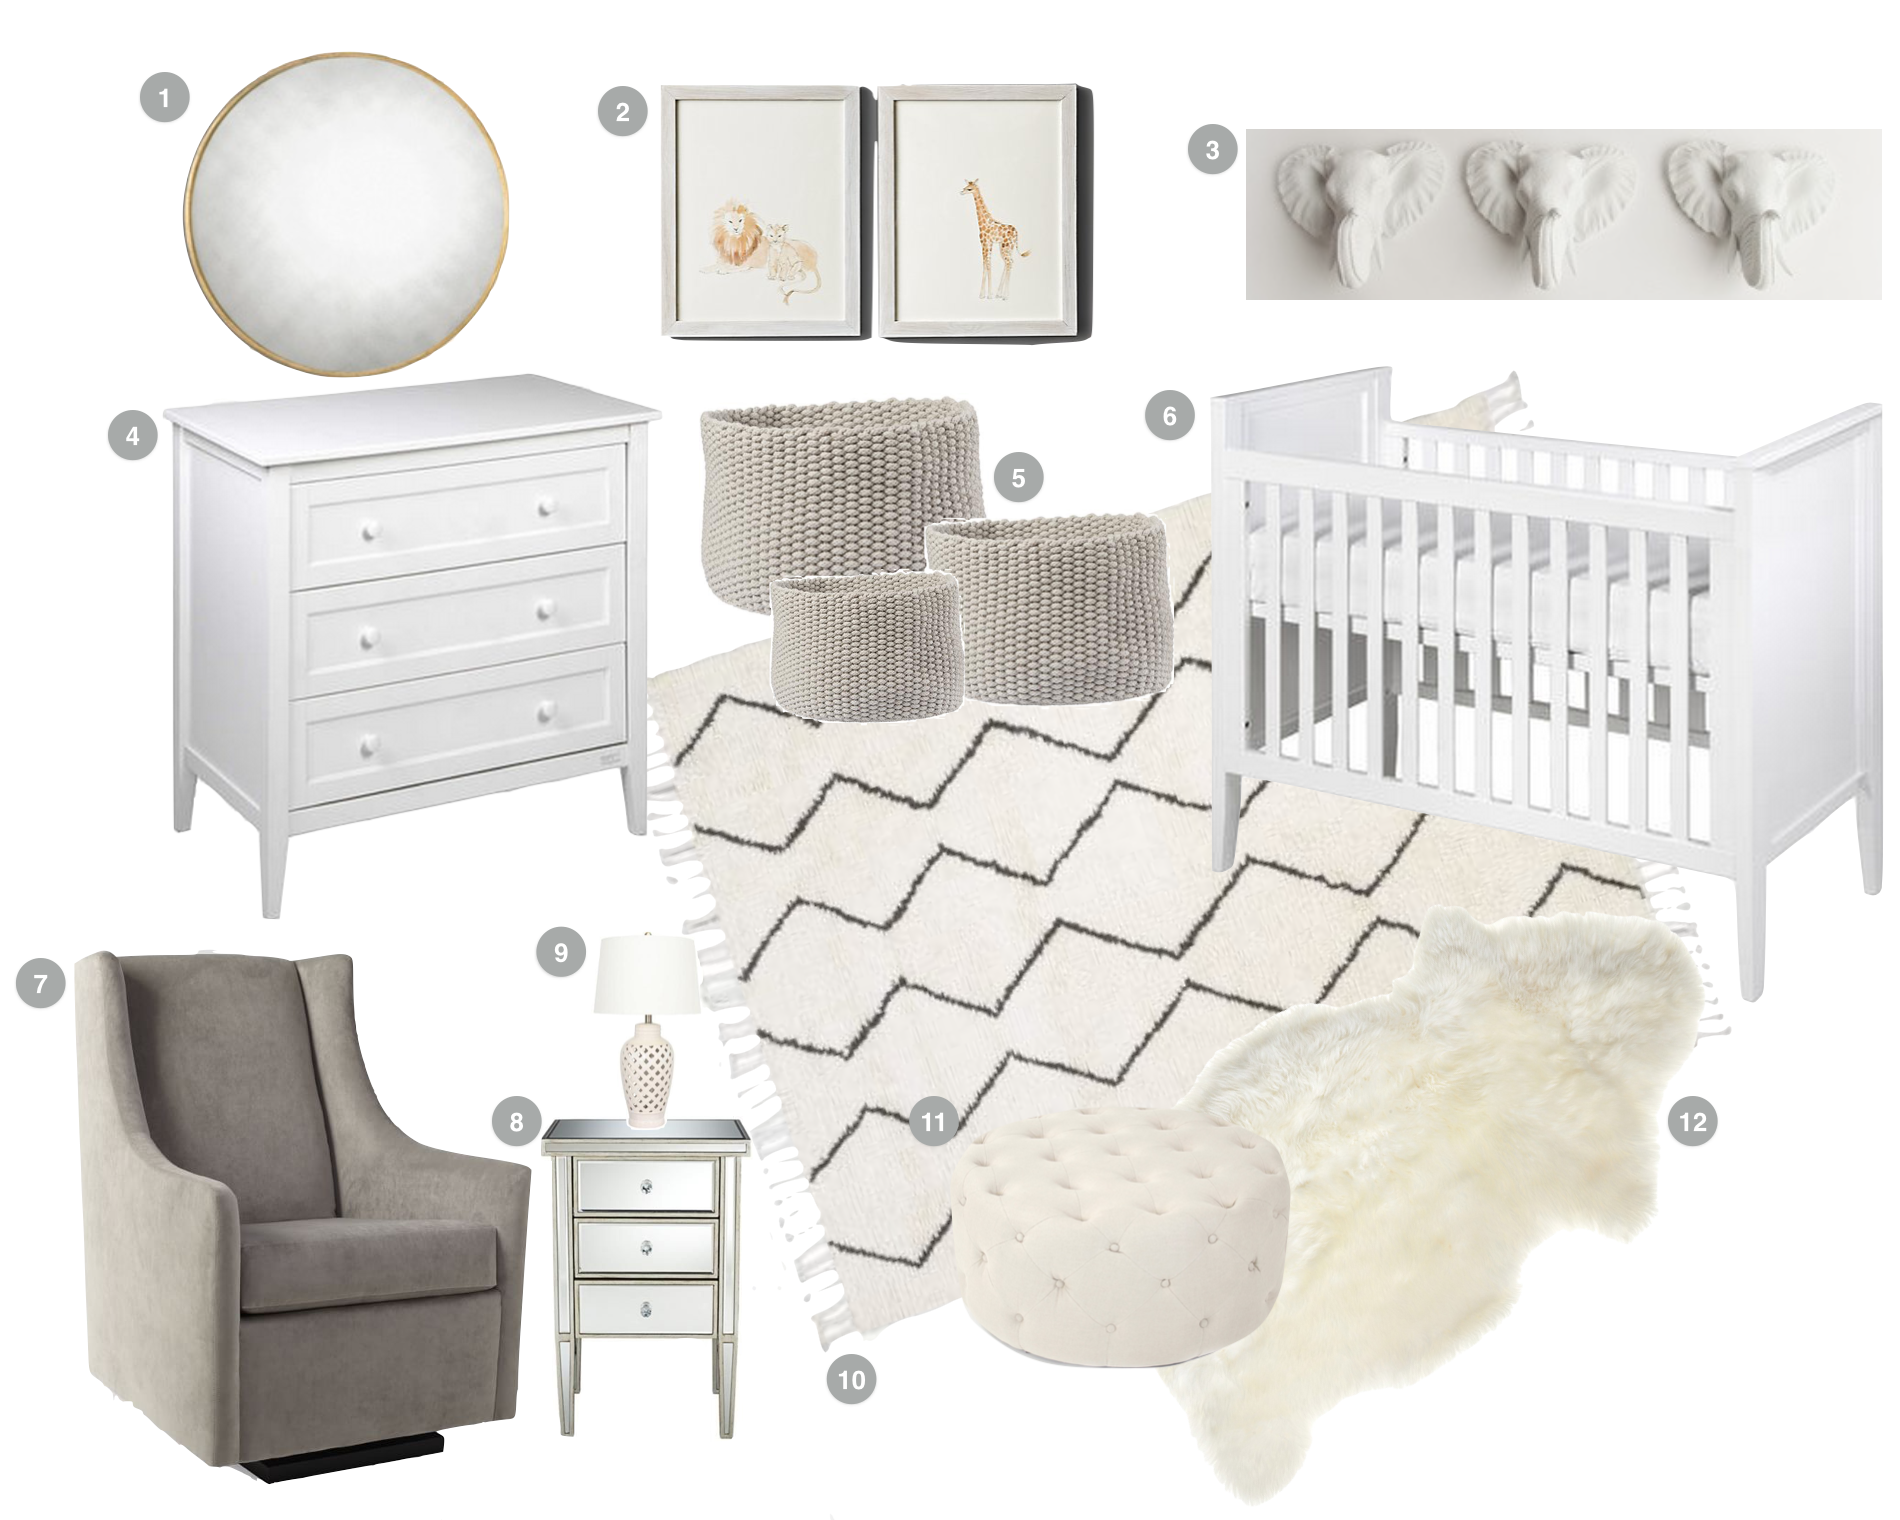 1. Wall mirror to open up and add interest to space. 2. Animal prints for subtle animal theme. 3. Faux elephant heads to decorate walls. 4. Simple white dresser that also serves as changing table. 5. Simple, versatile toy storage. 6. Simple white crib. 7. Clean, classic grey glider. 8. Mirrored nightstand to hold nursing essentials. 9. White lattice table lamp for those middle of the night meals. 10. Neutral, soft Moroccan-inspired rug. 11. Neutral tufted ottoman to serve as extra seating. 12. Large, plush sheepskin rug.